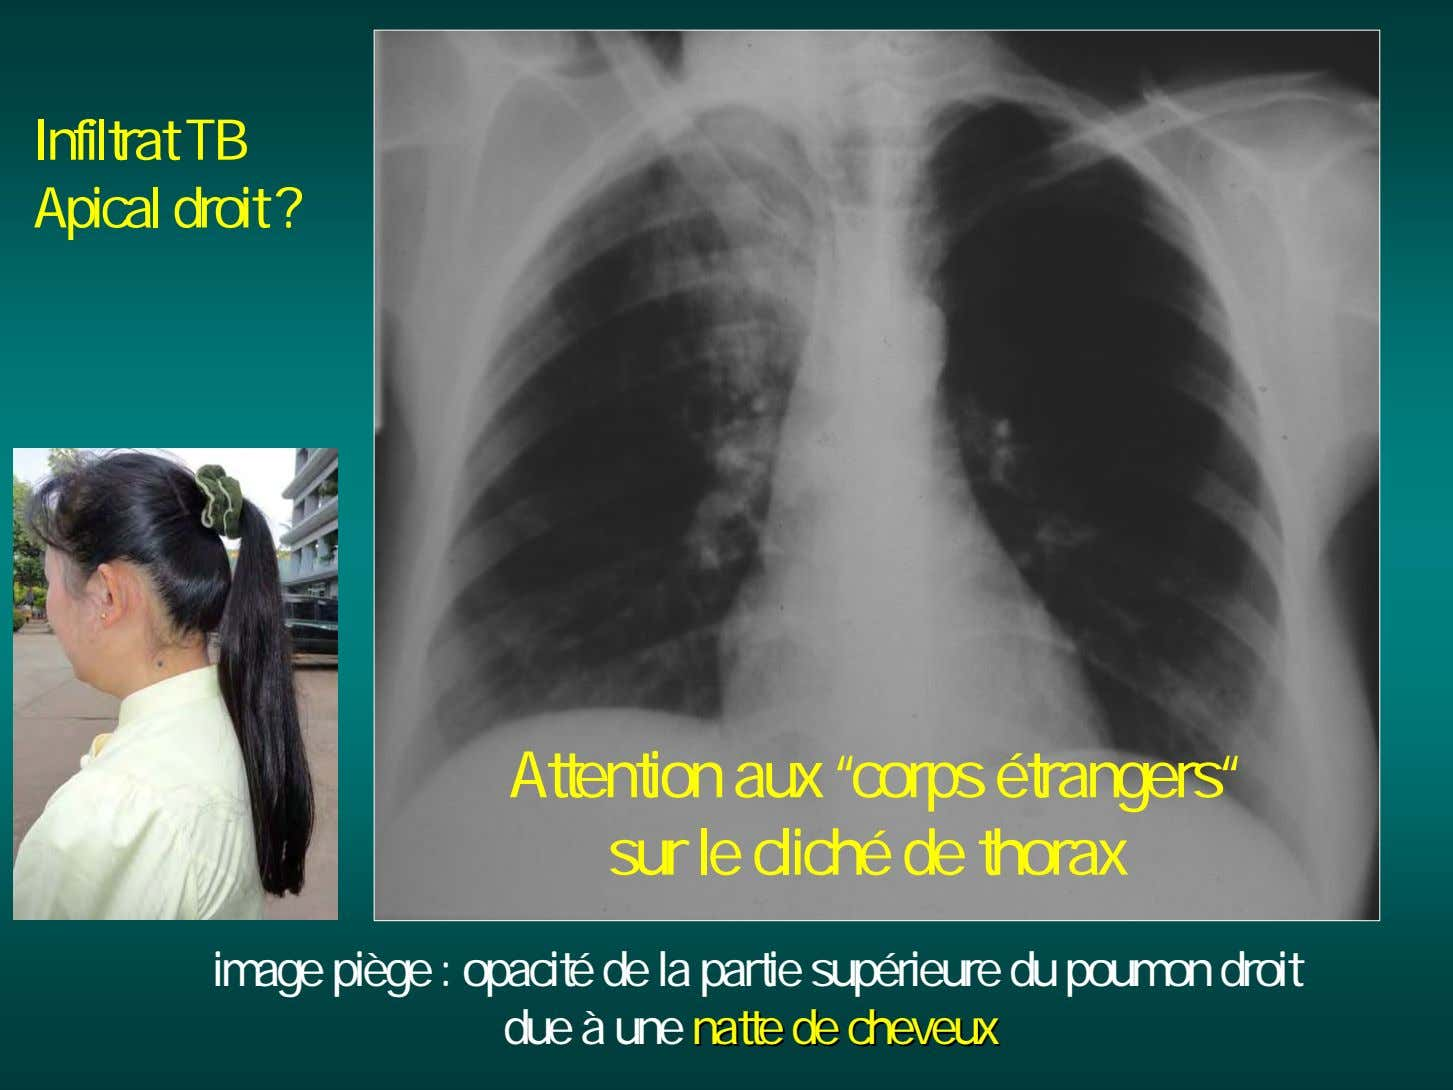 "Infiltrat TB Apical droit ? Attention aux ""corps étrangers"" sur le cliché de thorax image"